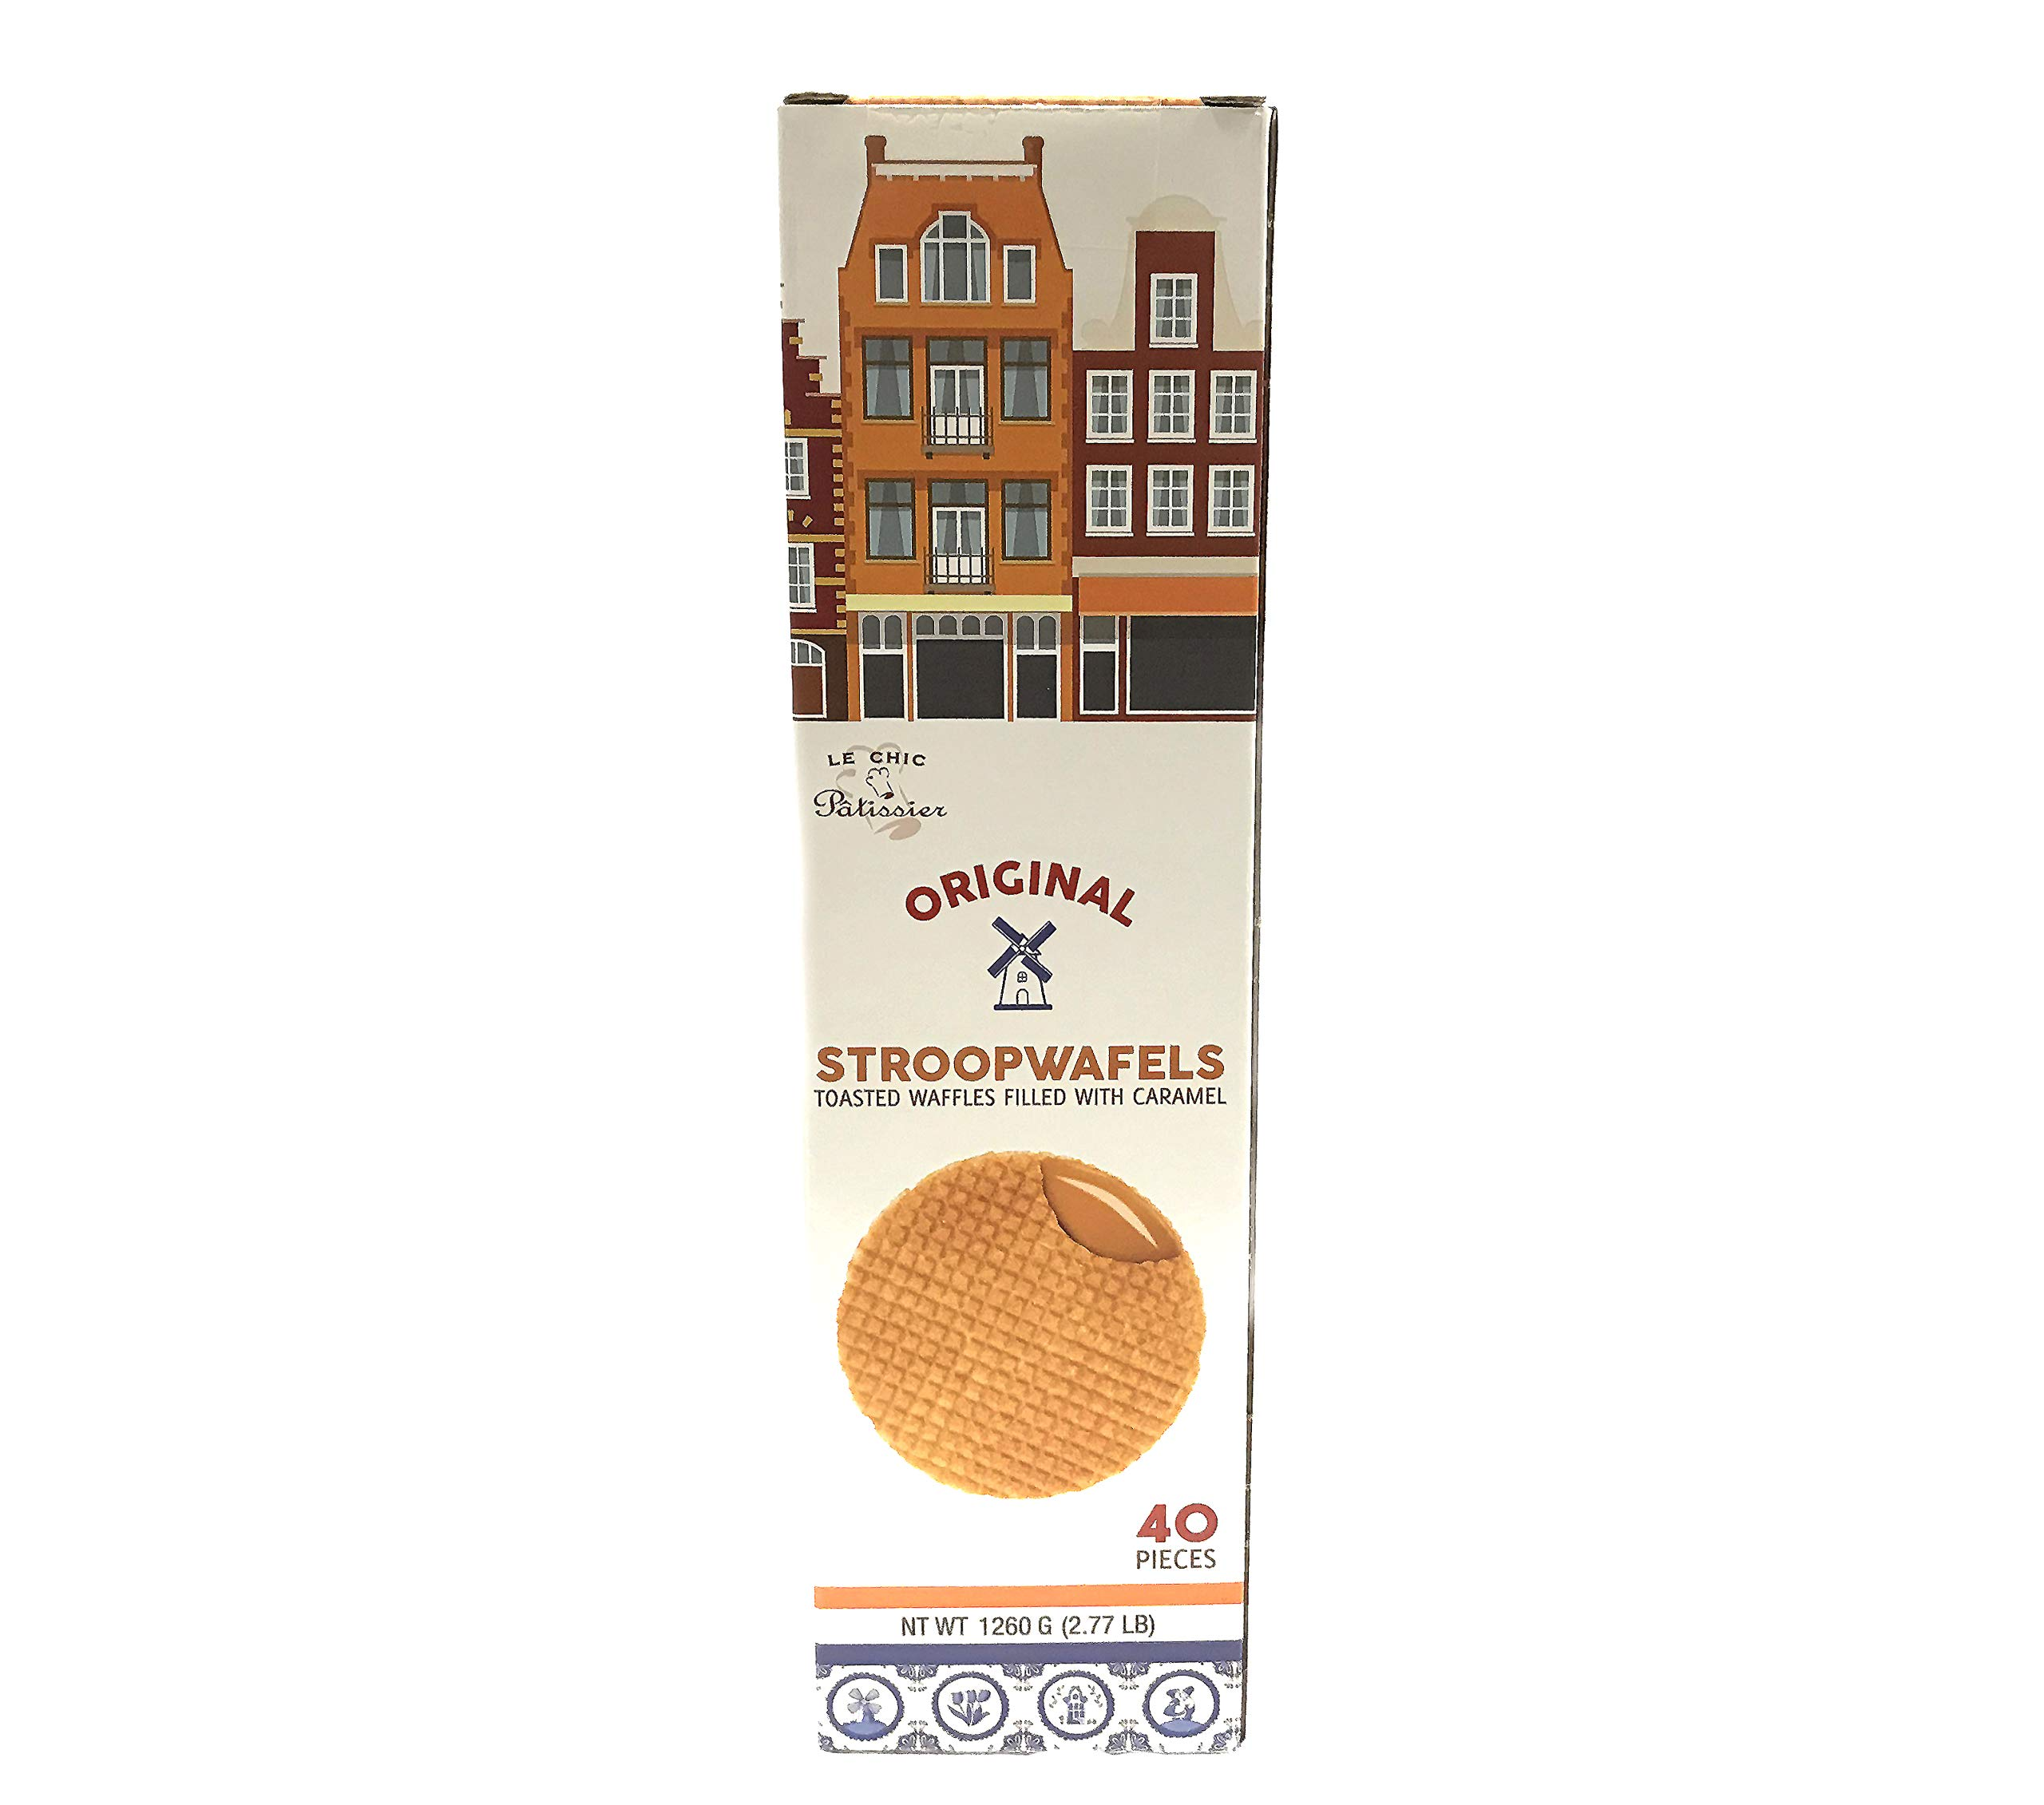 Daelmans Original Caramel Wafer, Stroopwafel, Holiday Family Size | 1.12-Ounce Box (Pack of 40) Total 2.77 Pounds